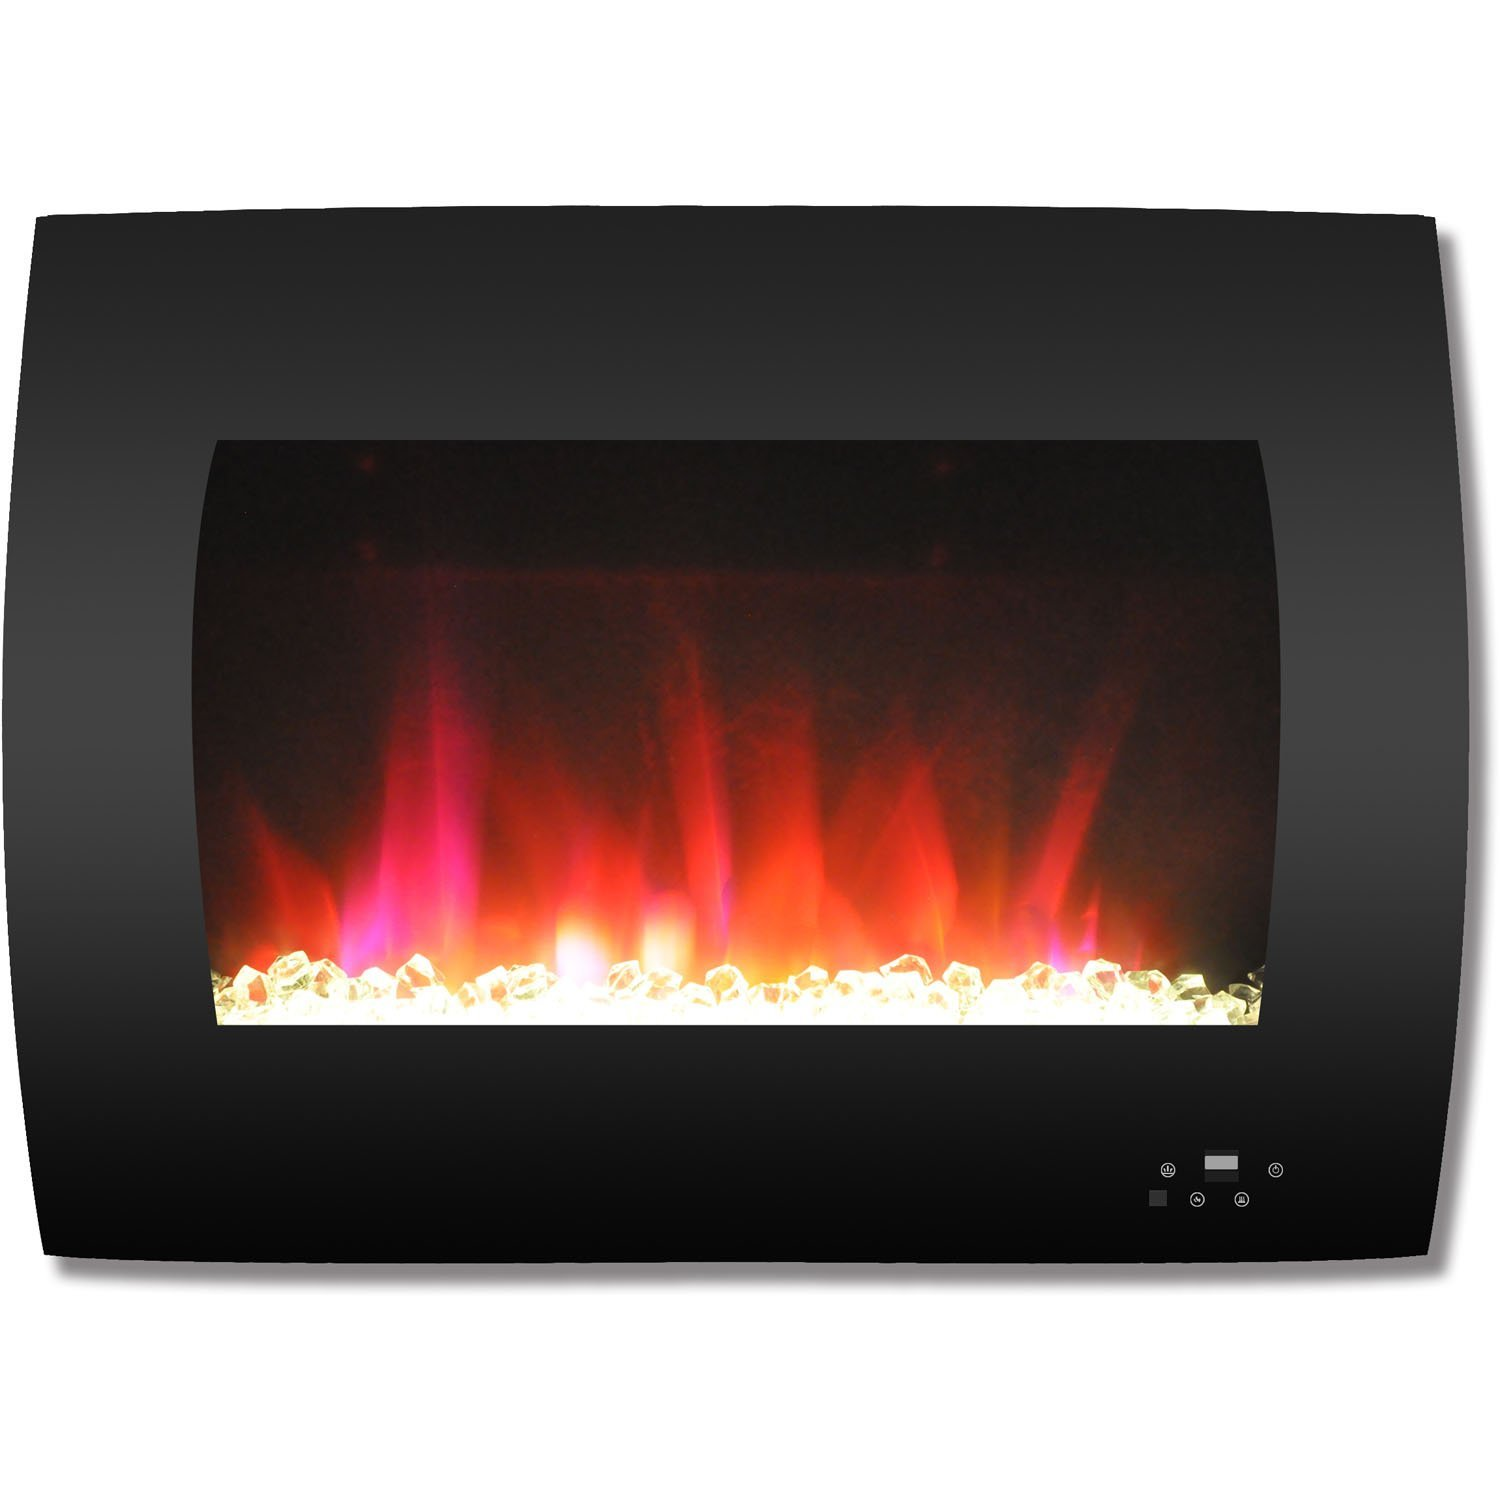 Cambridge CAM26WMEF-1BLK 26 In. Curved Wall-Mount Electric Fireplace in Black with Multi-Color Flames and Crystal Rock Display